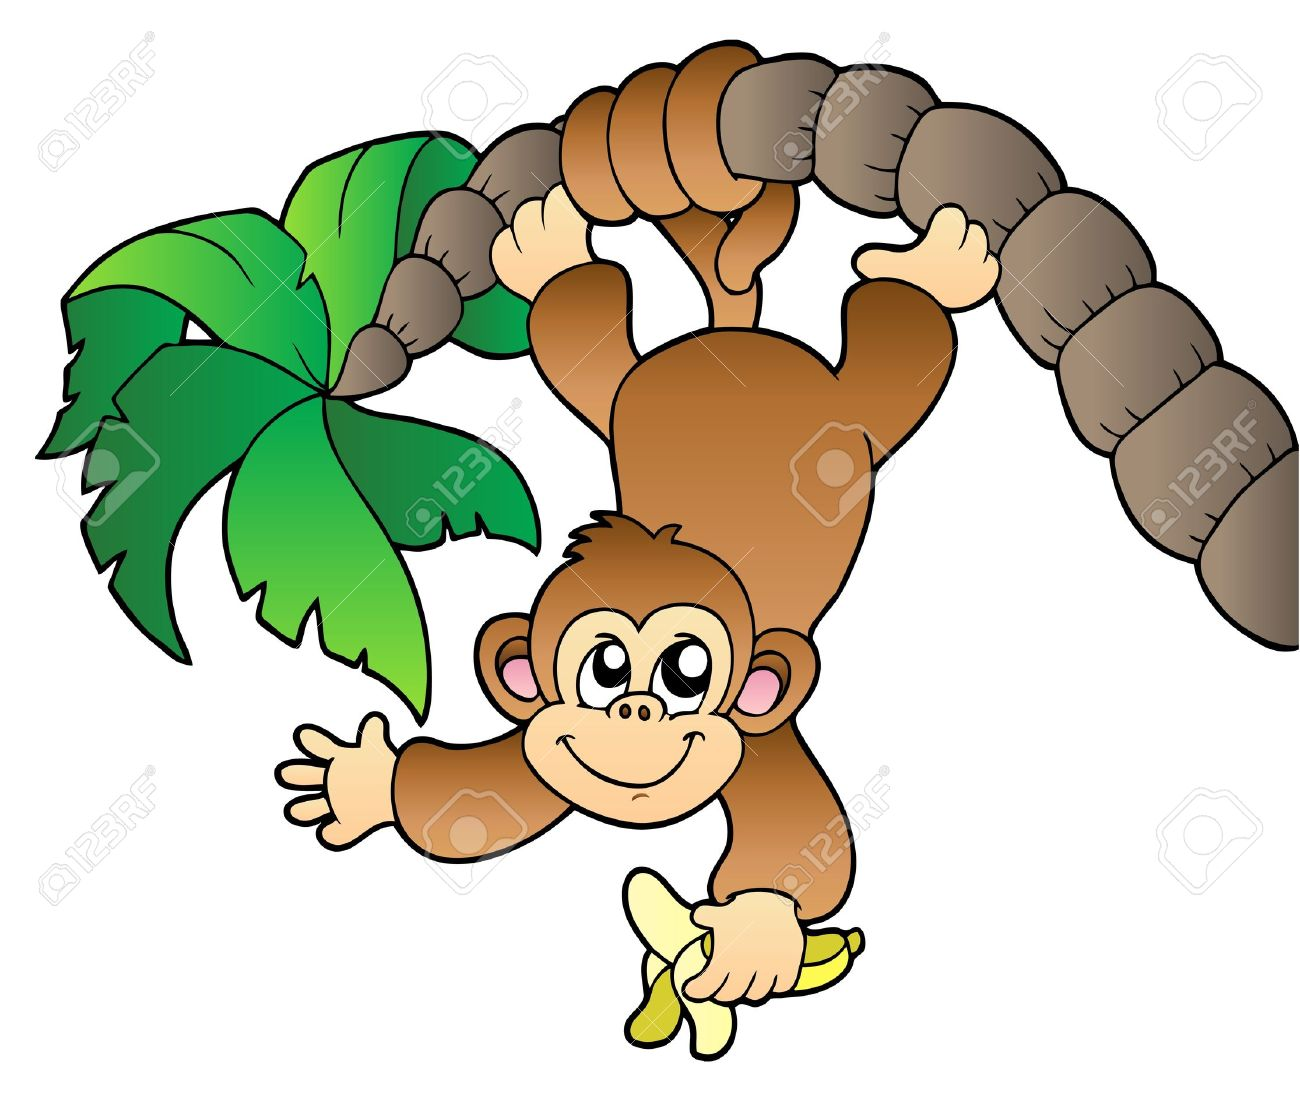 Images for simple cartoon monkey hanging - Monkey Hanging On Palm Tree Stock Vector 8799812